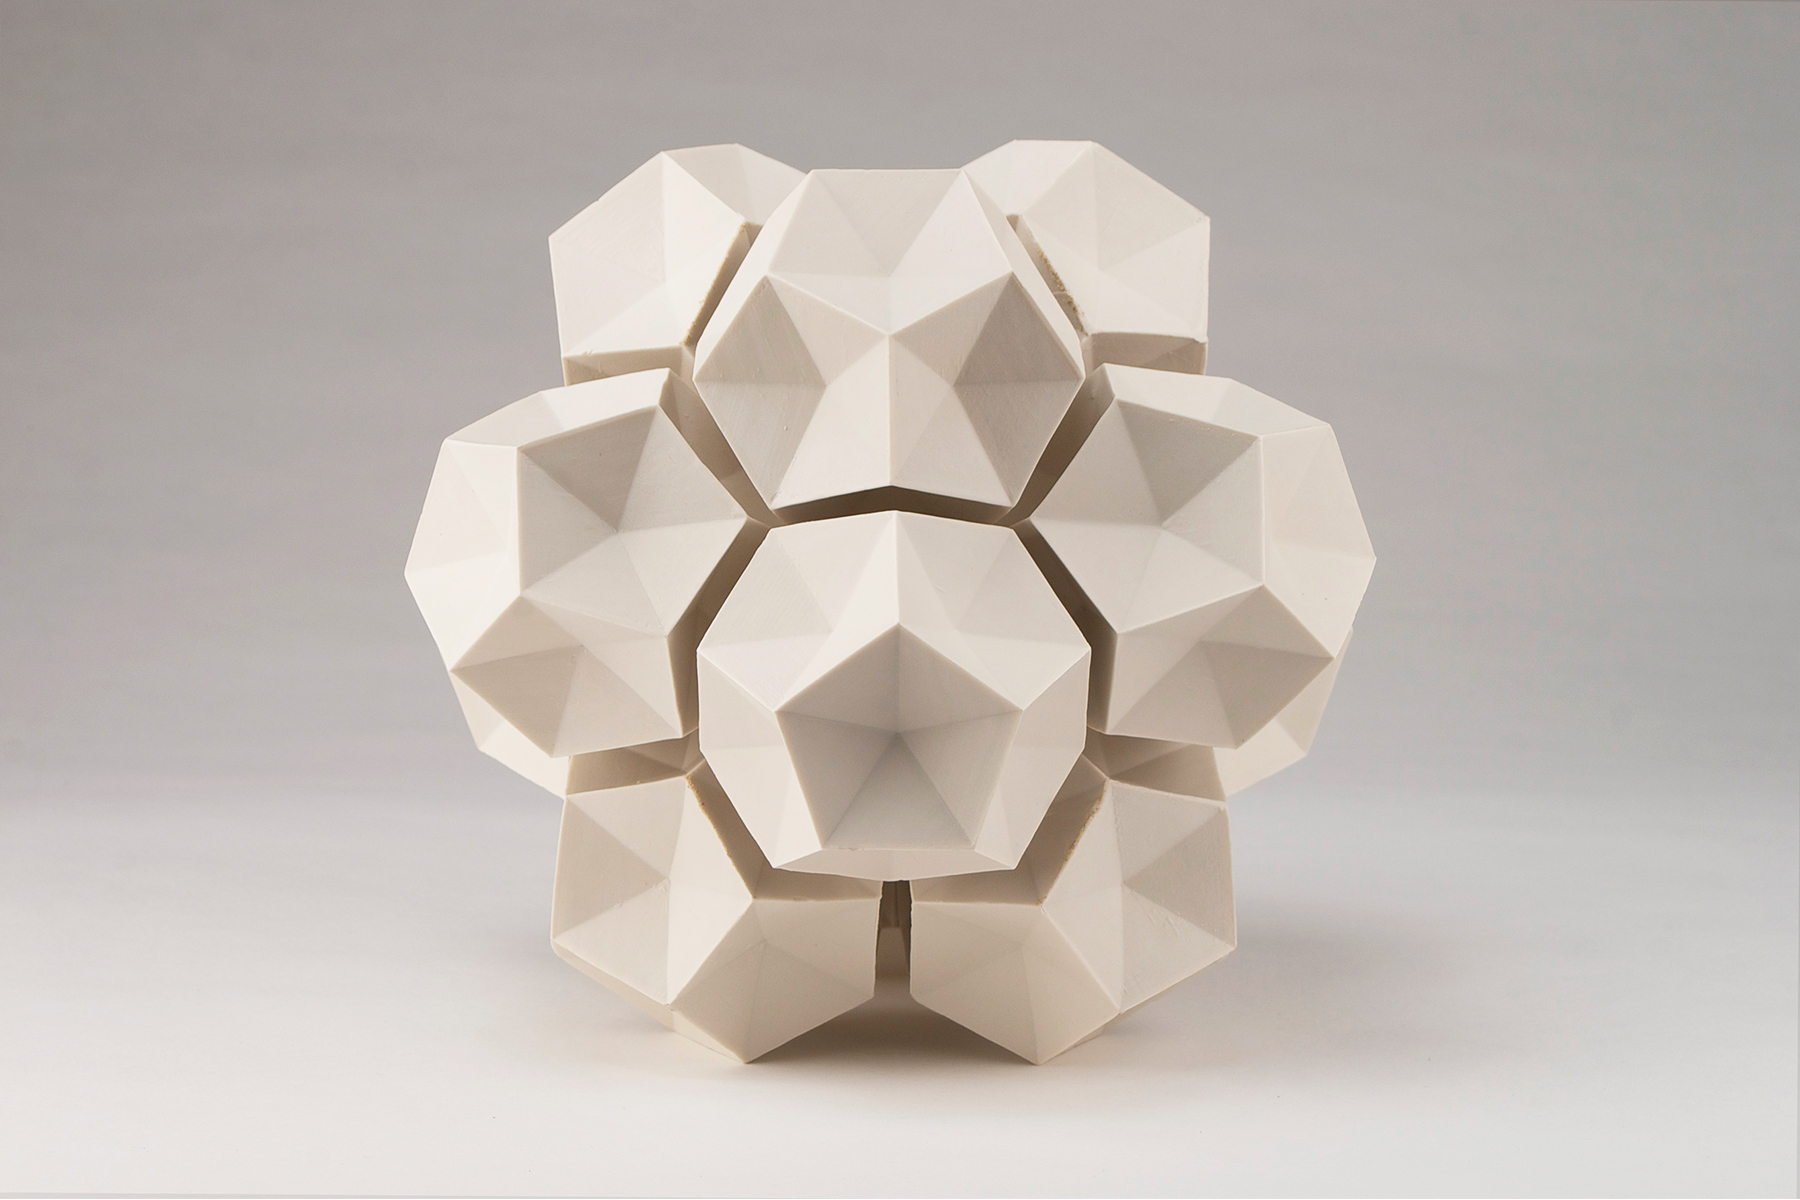 Dodecahedron Construction  |  14 x 14 x 14 inches  |  Porcelain  |  2016